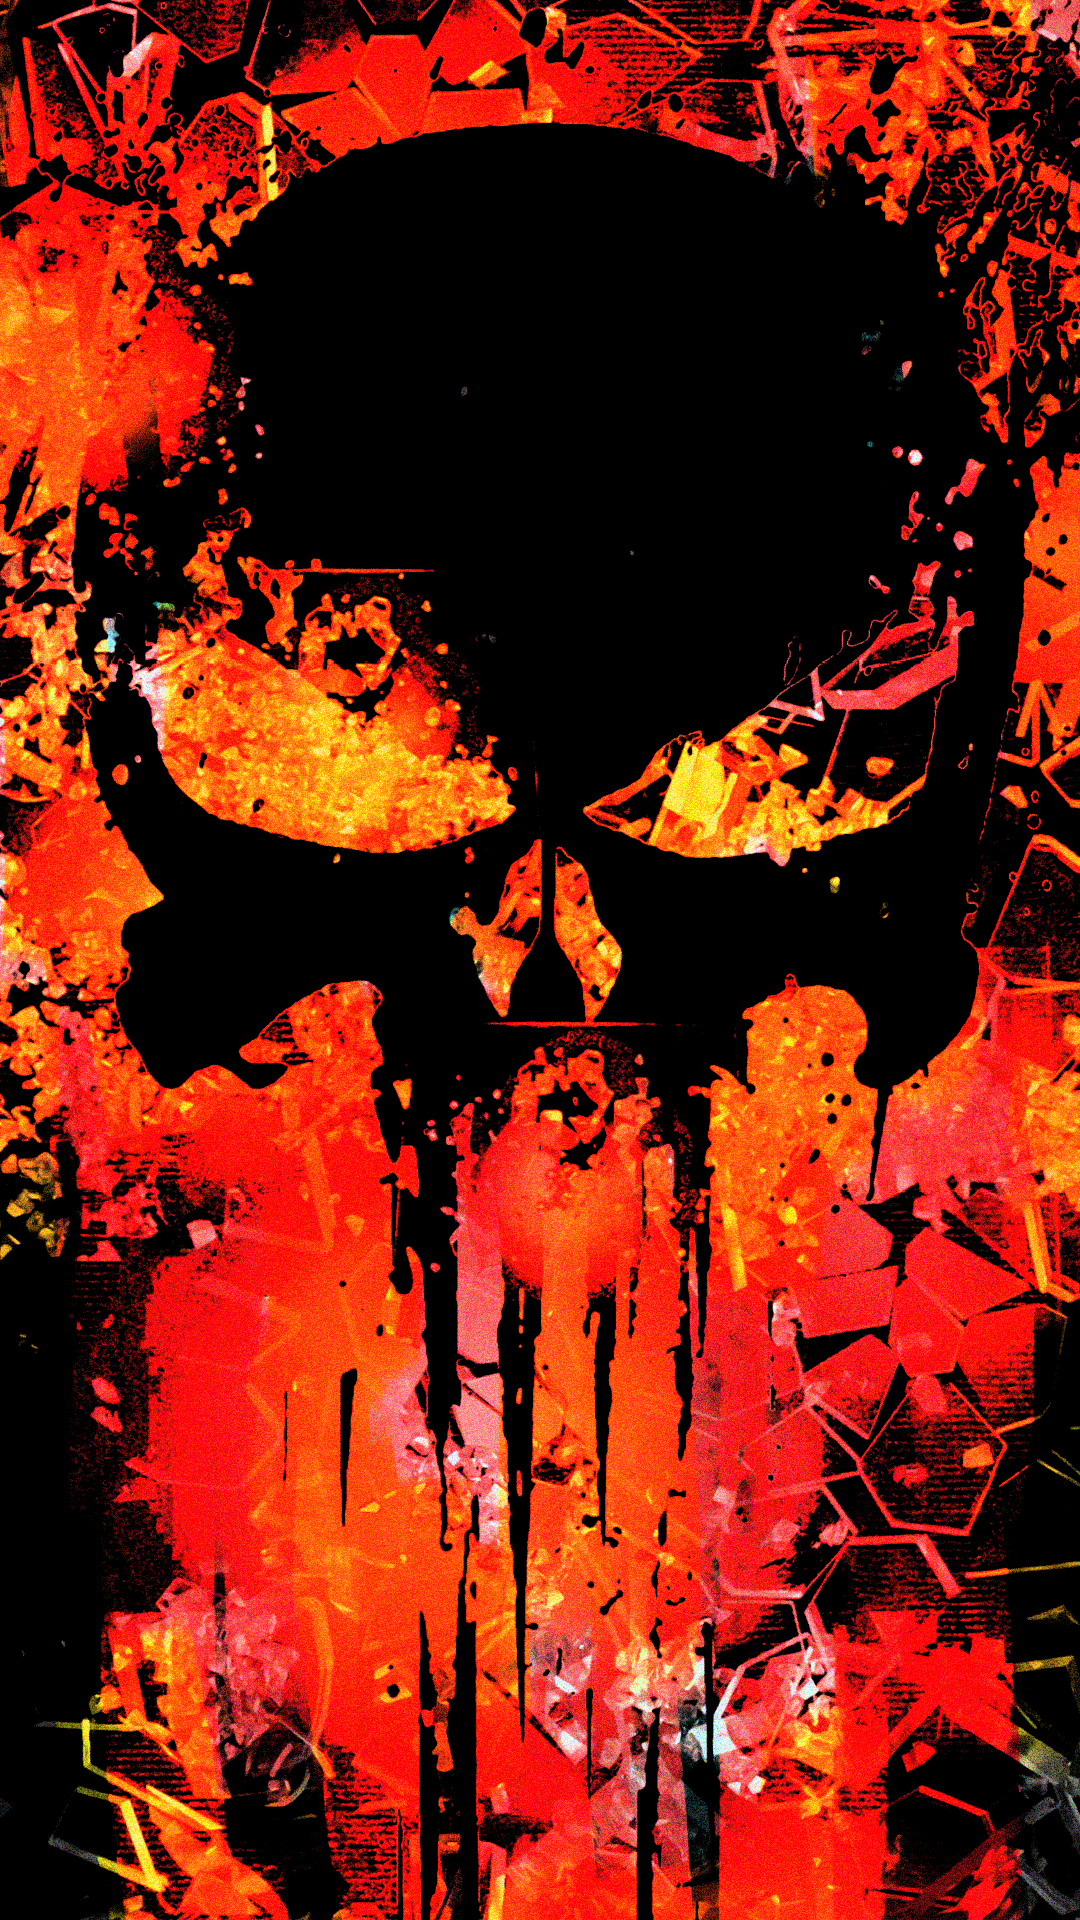 Punisher phone wallpapers | HeroScreen - Cool Wallpapers